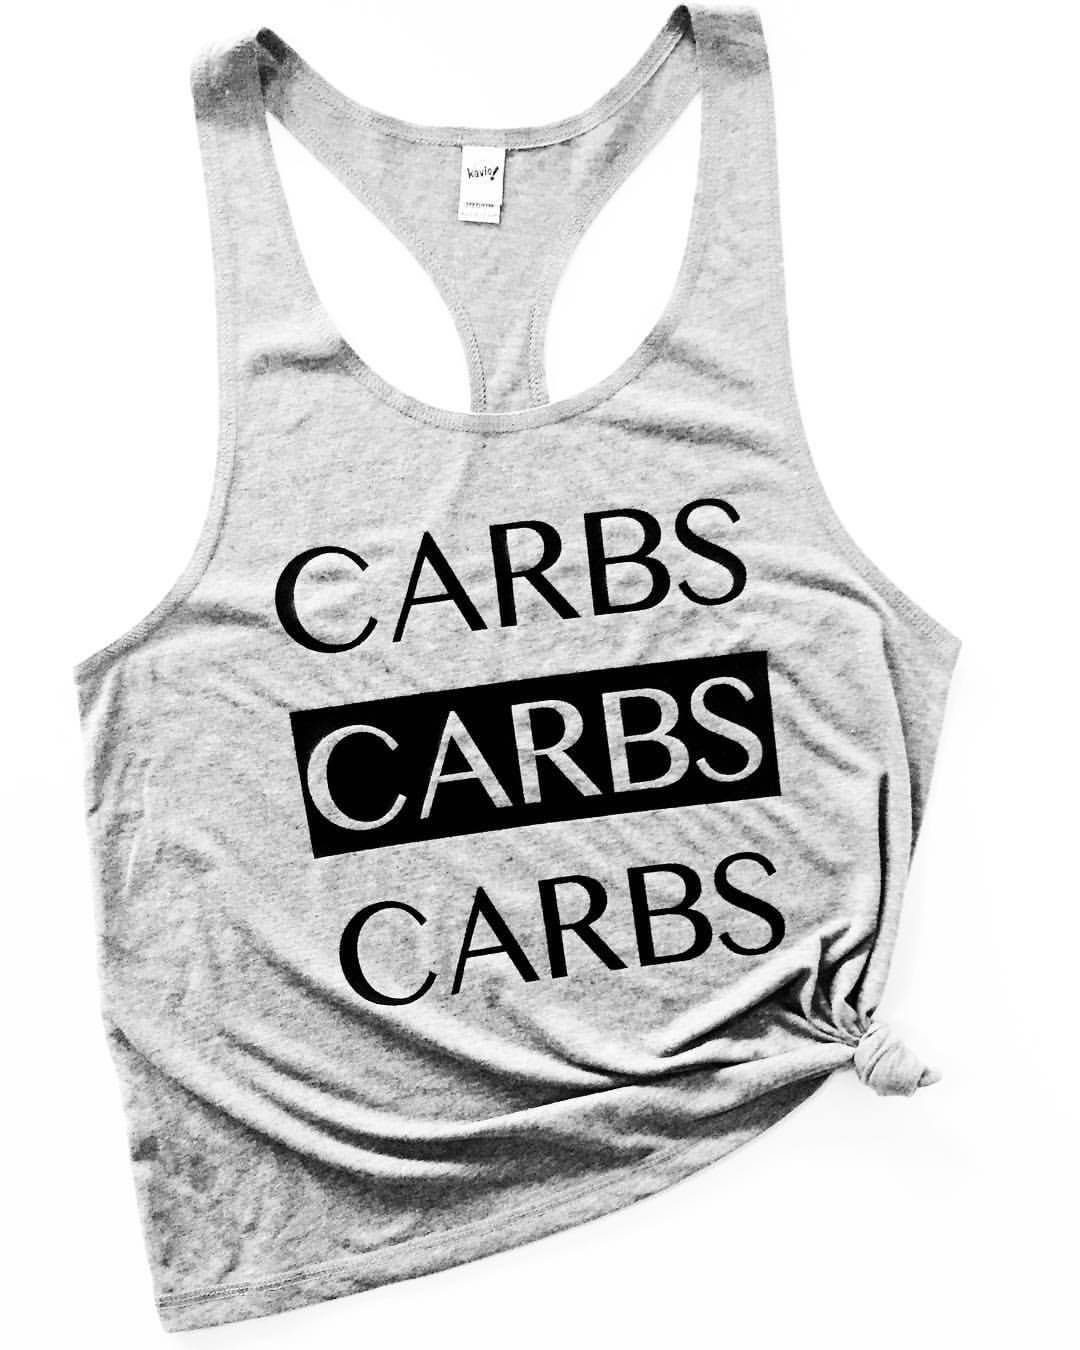 CARBS Muscle Tank discount Tanks Workout Gym Discount is also underway